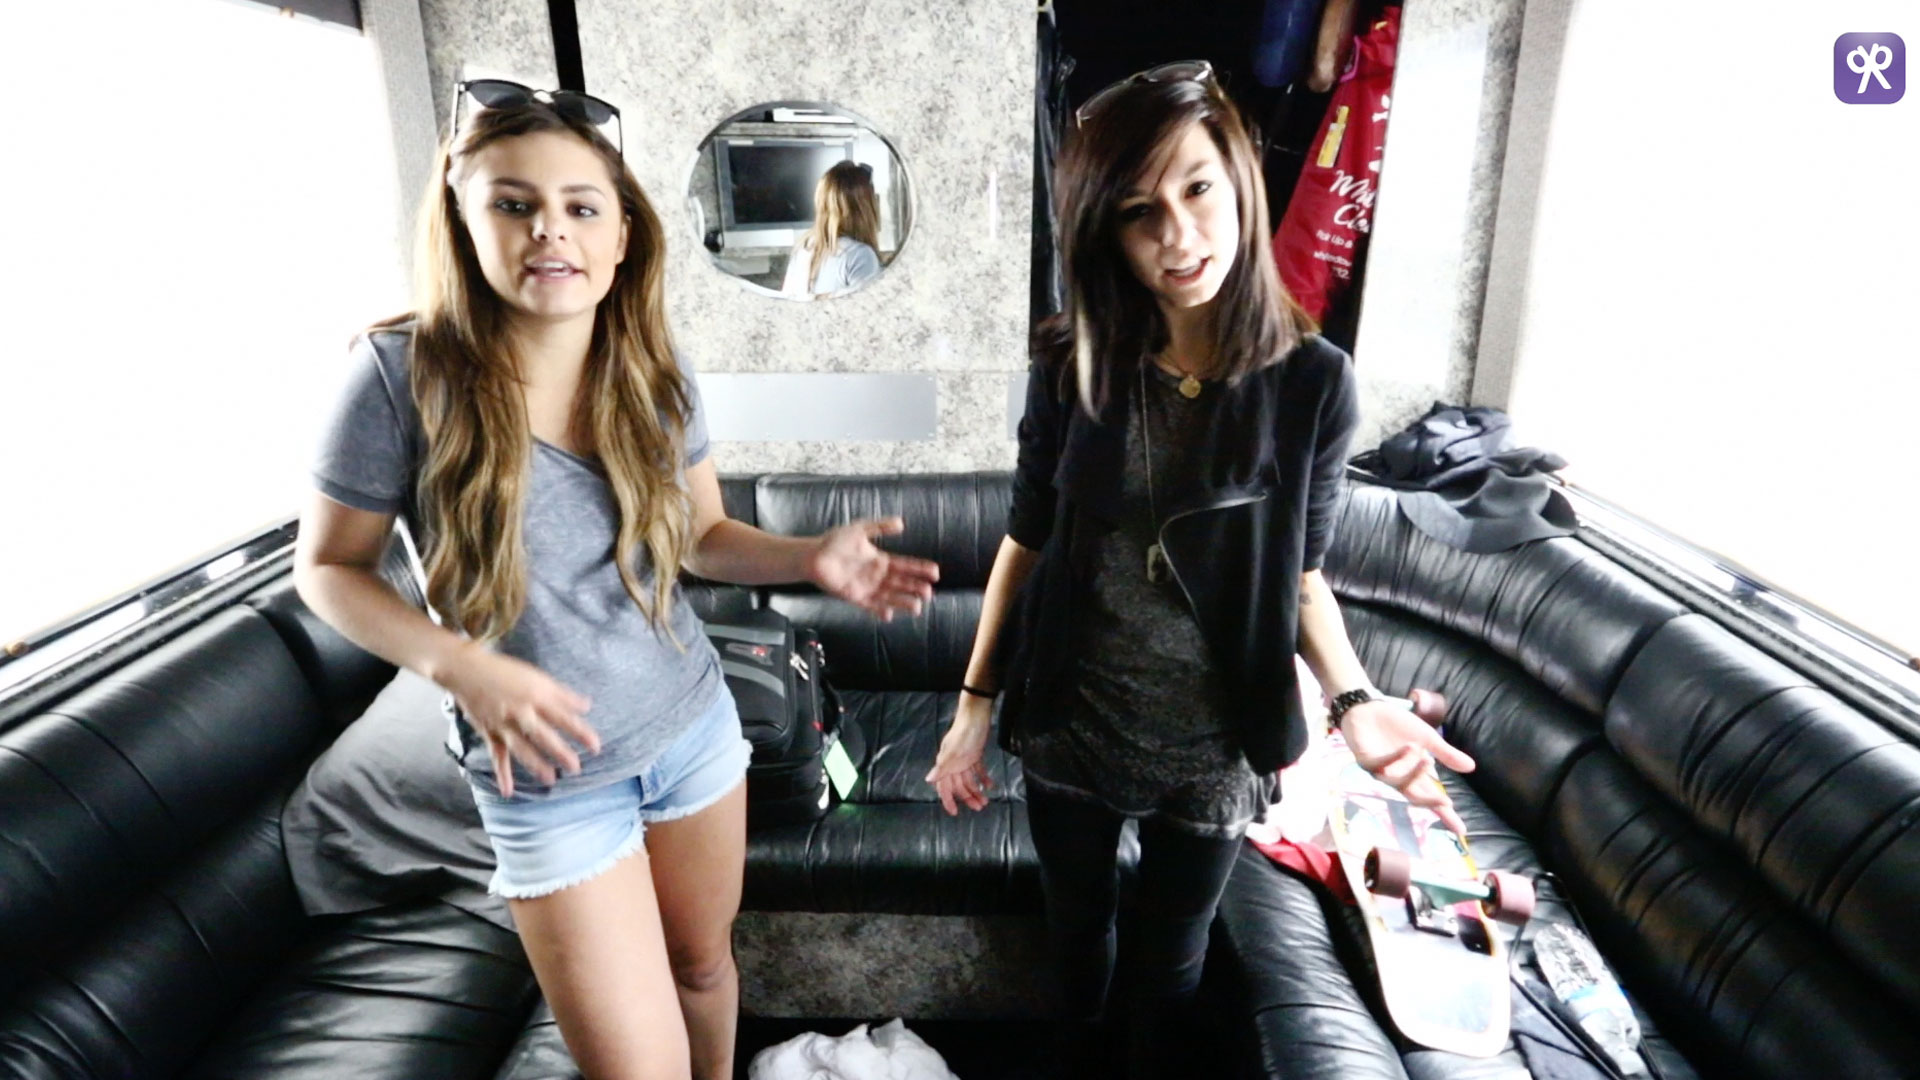 Christina and Jacquie's Tour Bus Tour